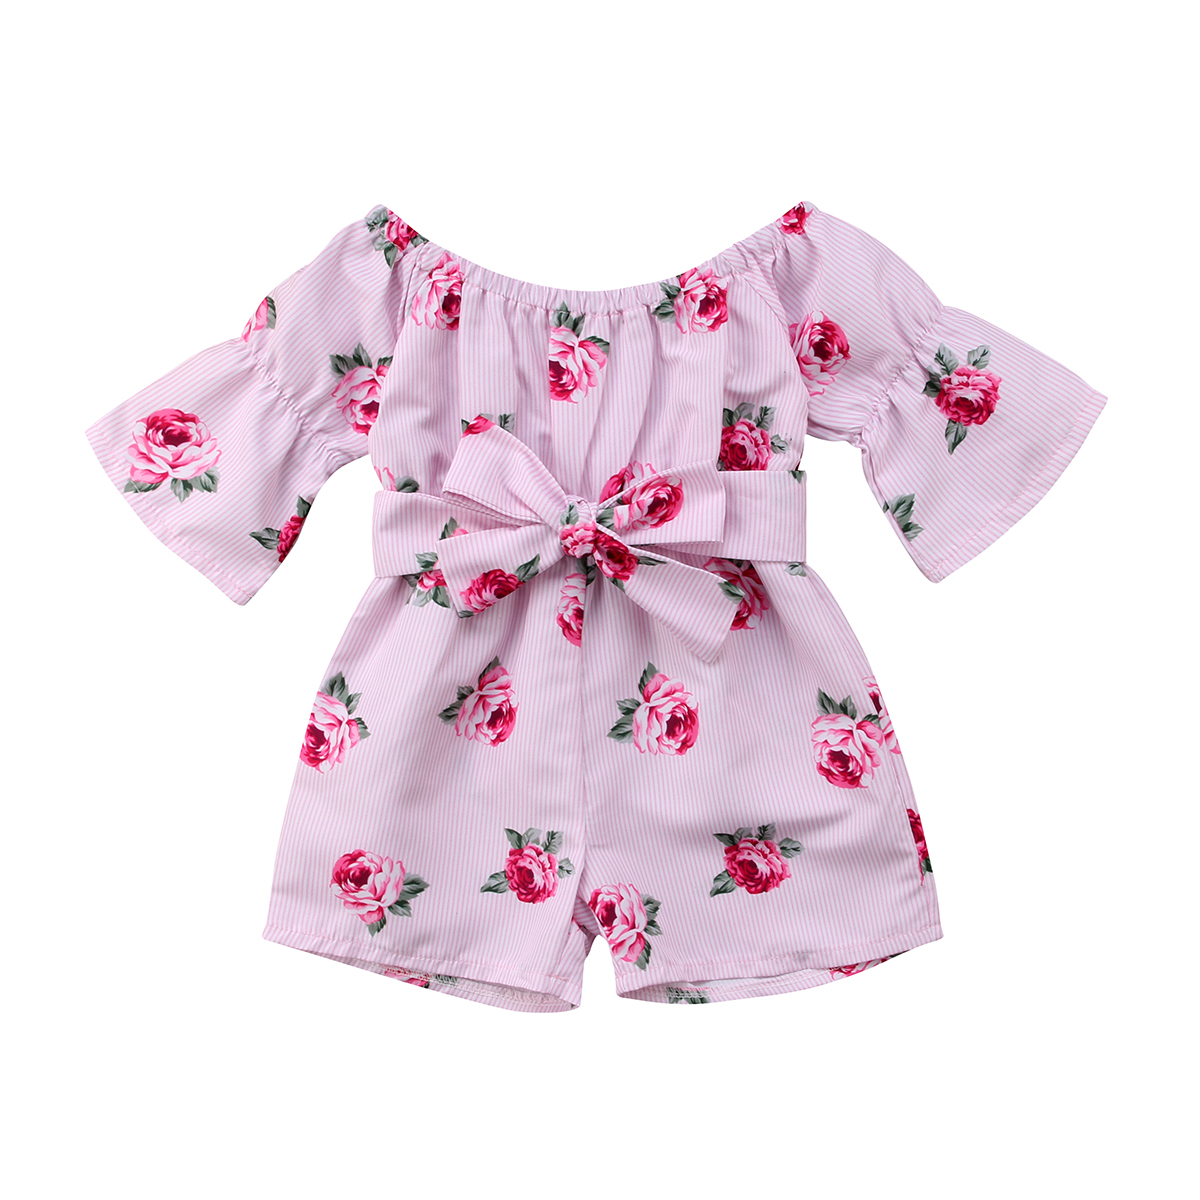 b2dd20c418d2 Kids Baby Girl Romper Floral Bodysuit Jumpsuit Sunsuit Summer Outfits  Clothes 2018 Brand New Newborn Toddler Infant in Pakistan